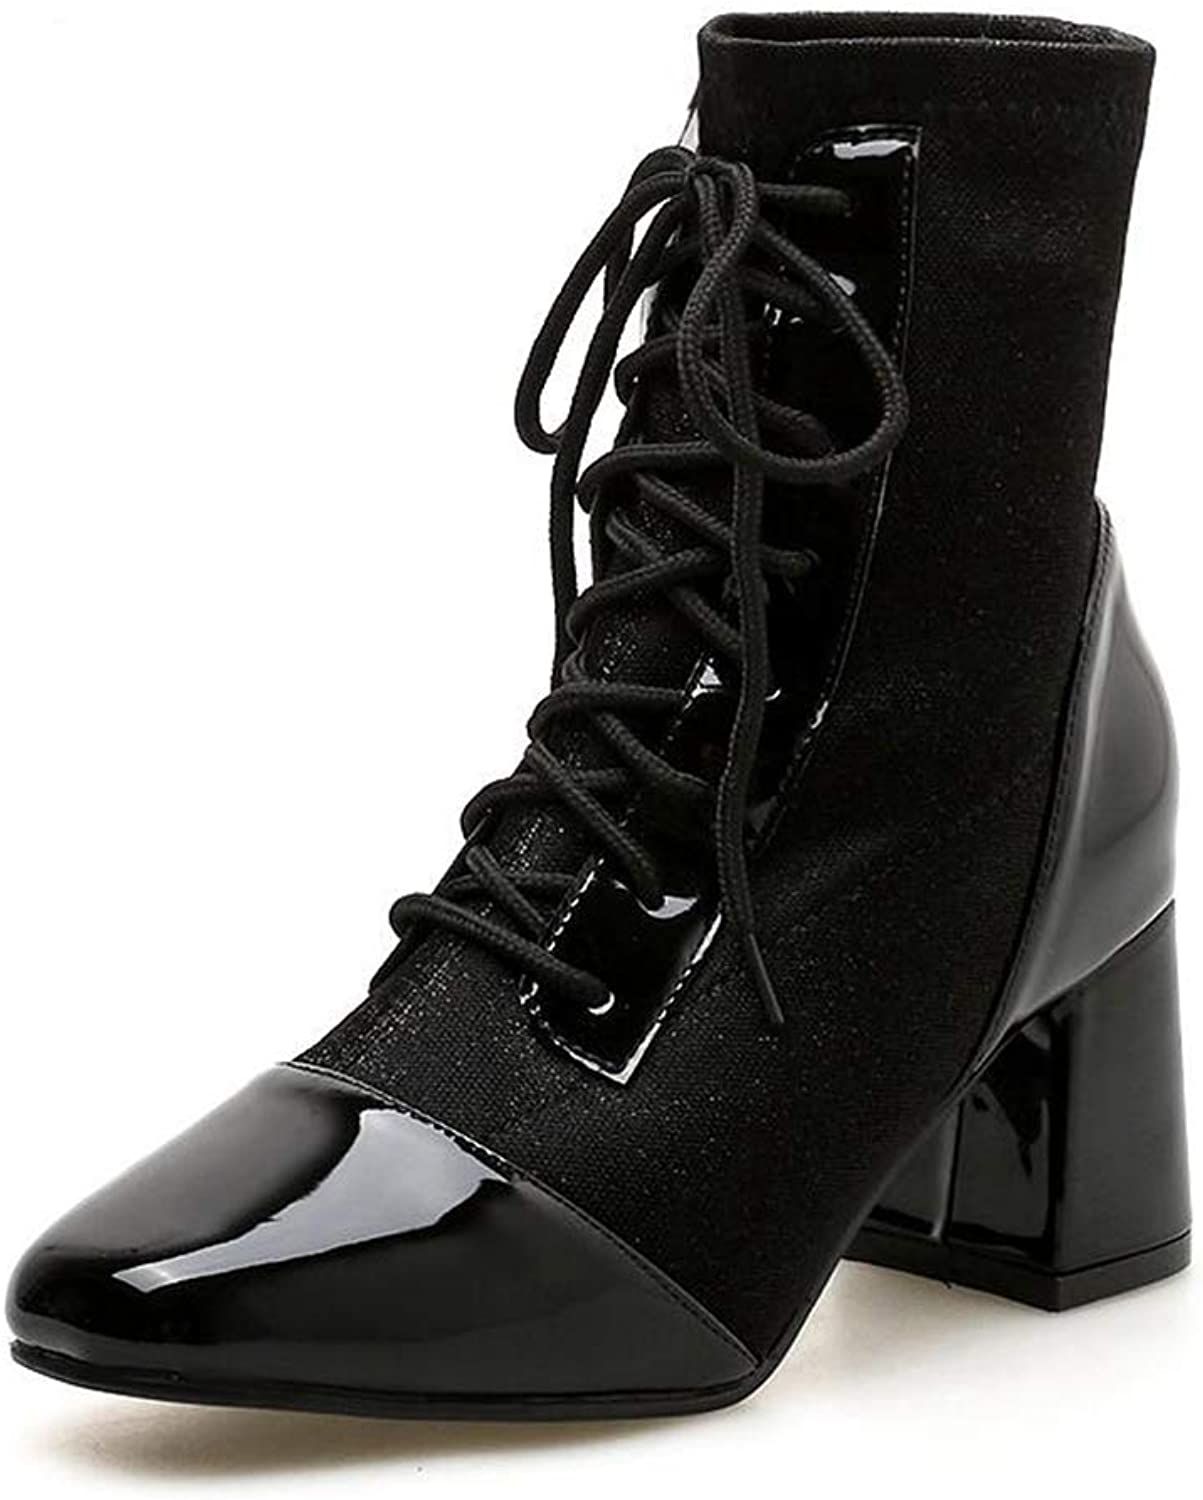 Silver PU Leather Ankle Boots for Women Square Toe Chunky Heels Lace-up Chelsea Booties